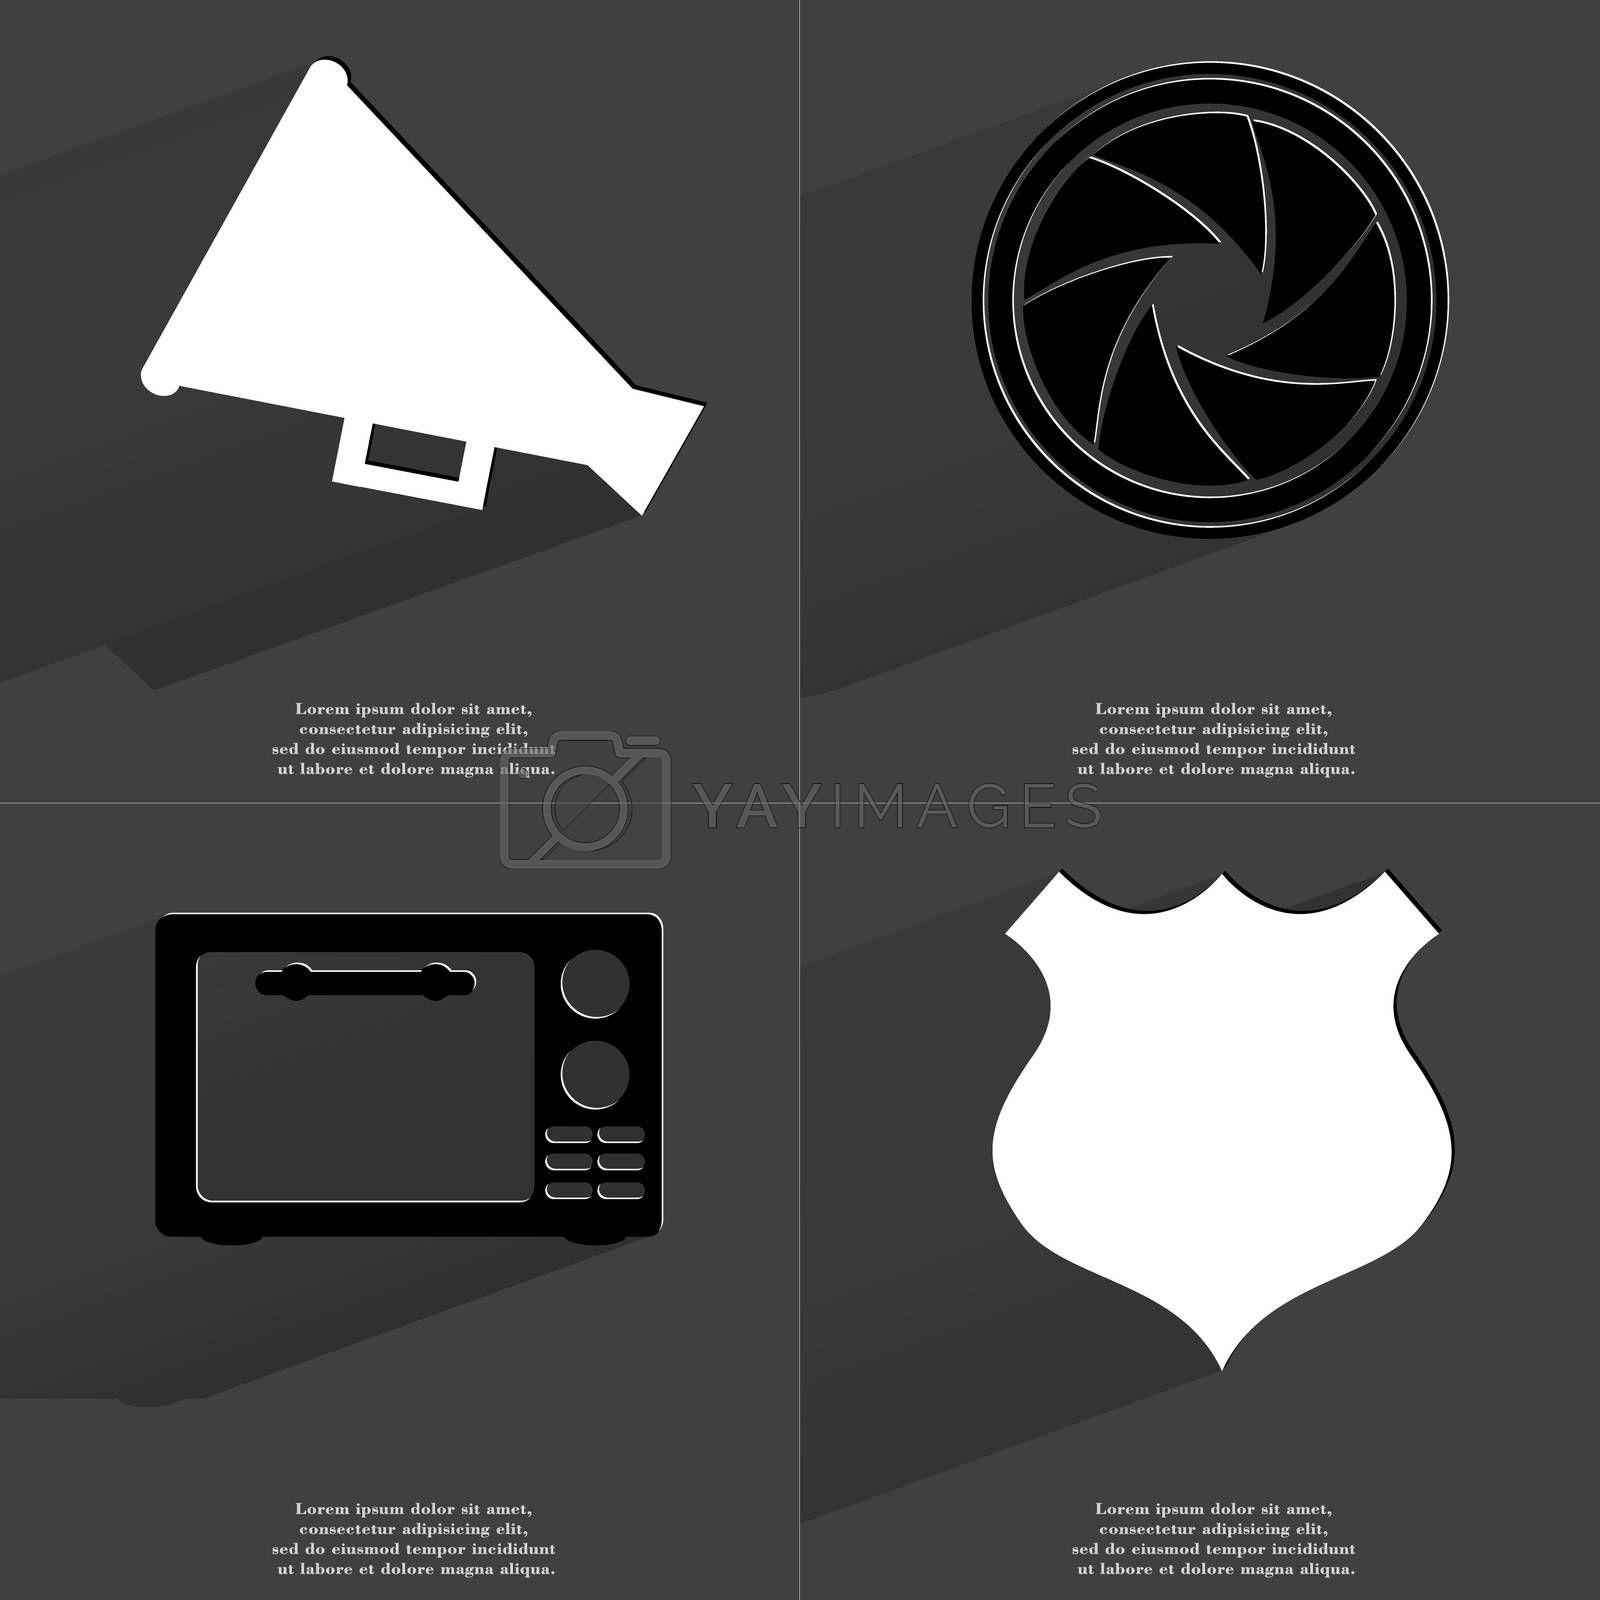 Royalty free image of Megaphone, Lens, Microwave, Police badge. Symbols with long shadow. Flat design by serhii_lohvyniuk